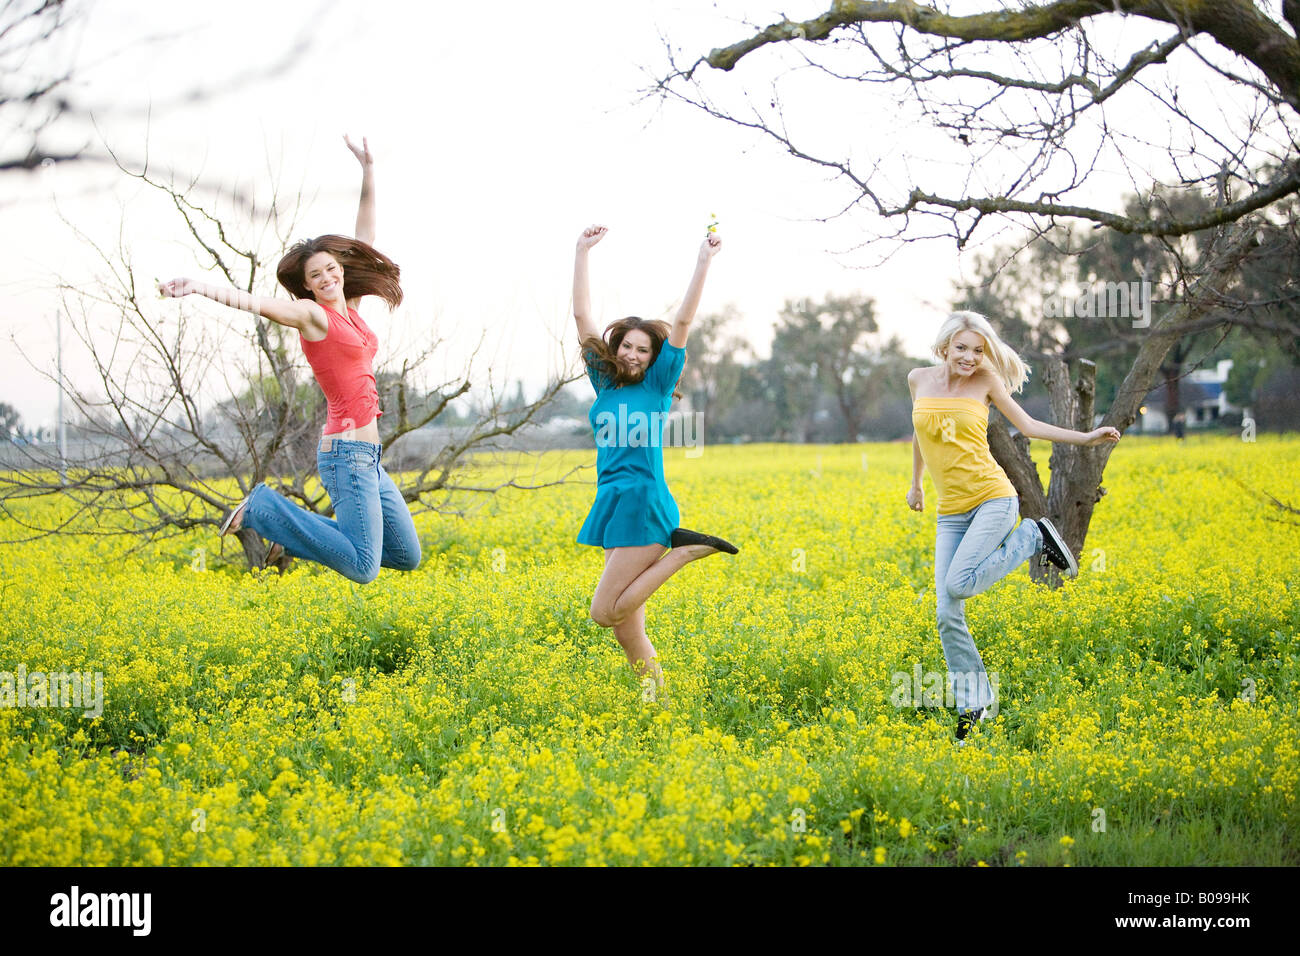 Three young women smiling and jumping in a yellow field of mustard plants. - Stock Image